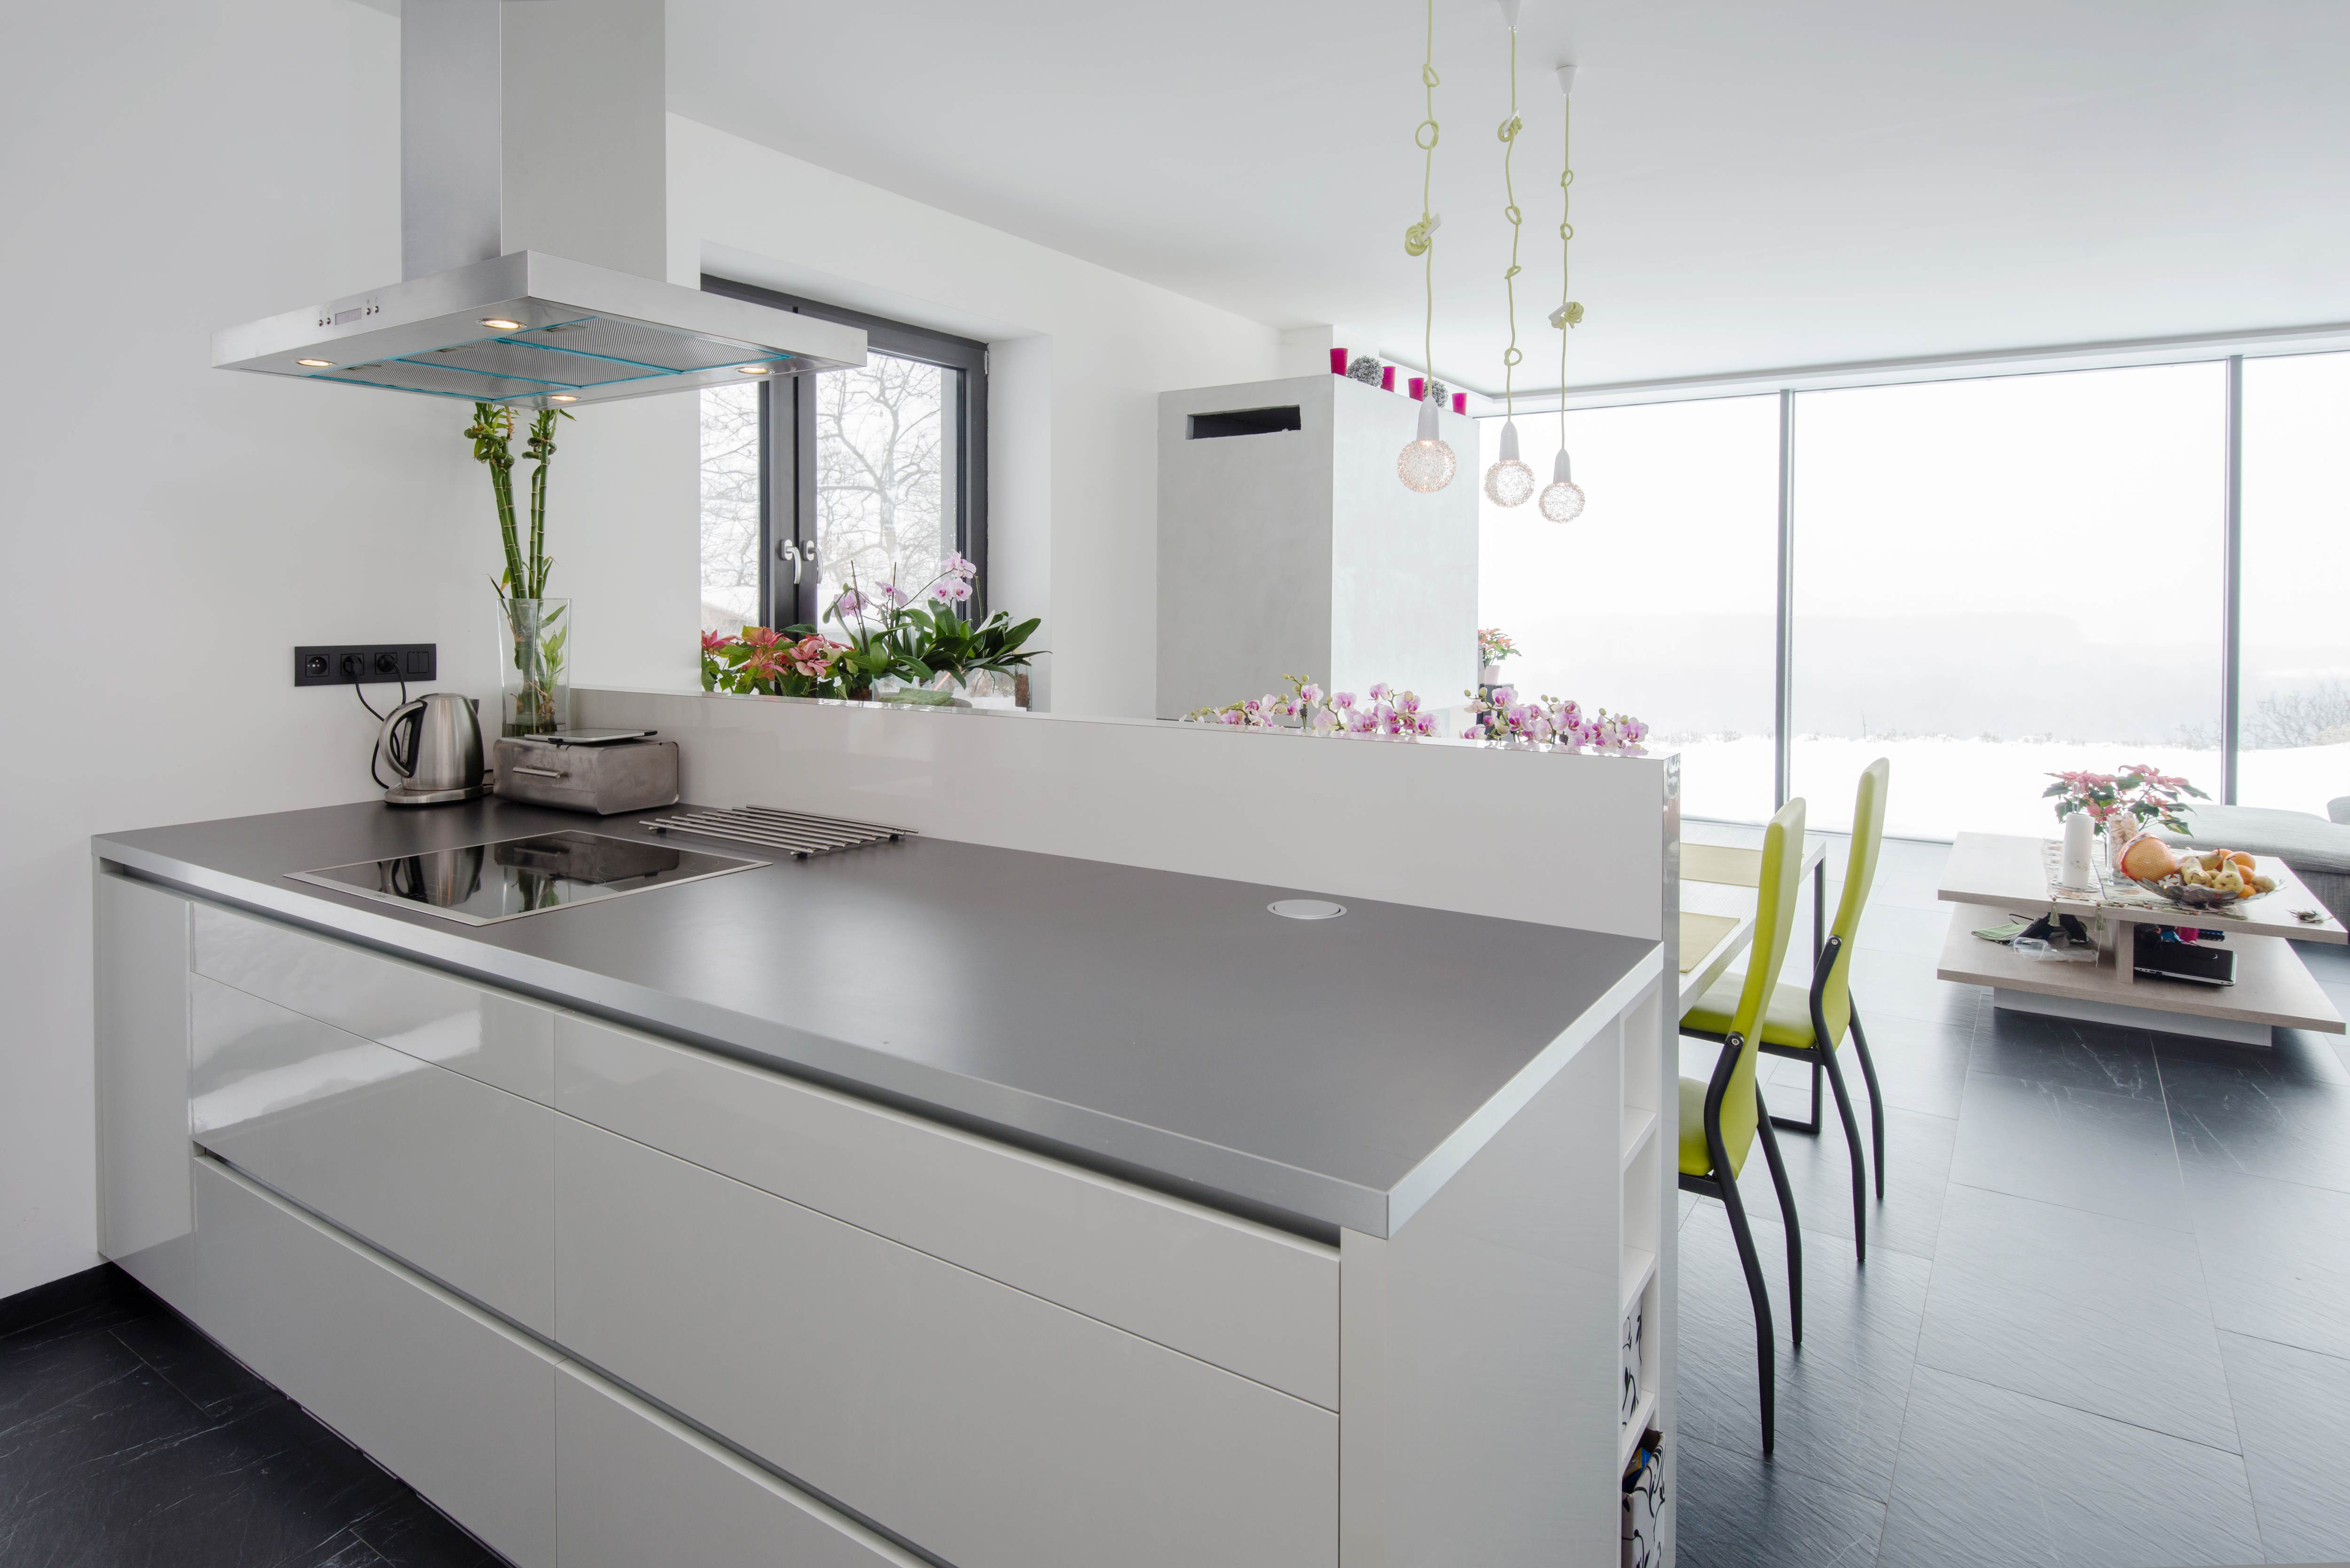 A clean kitchen surface and floor